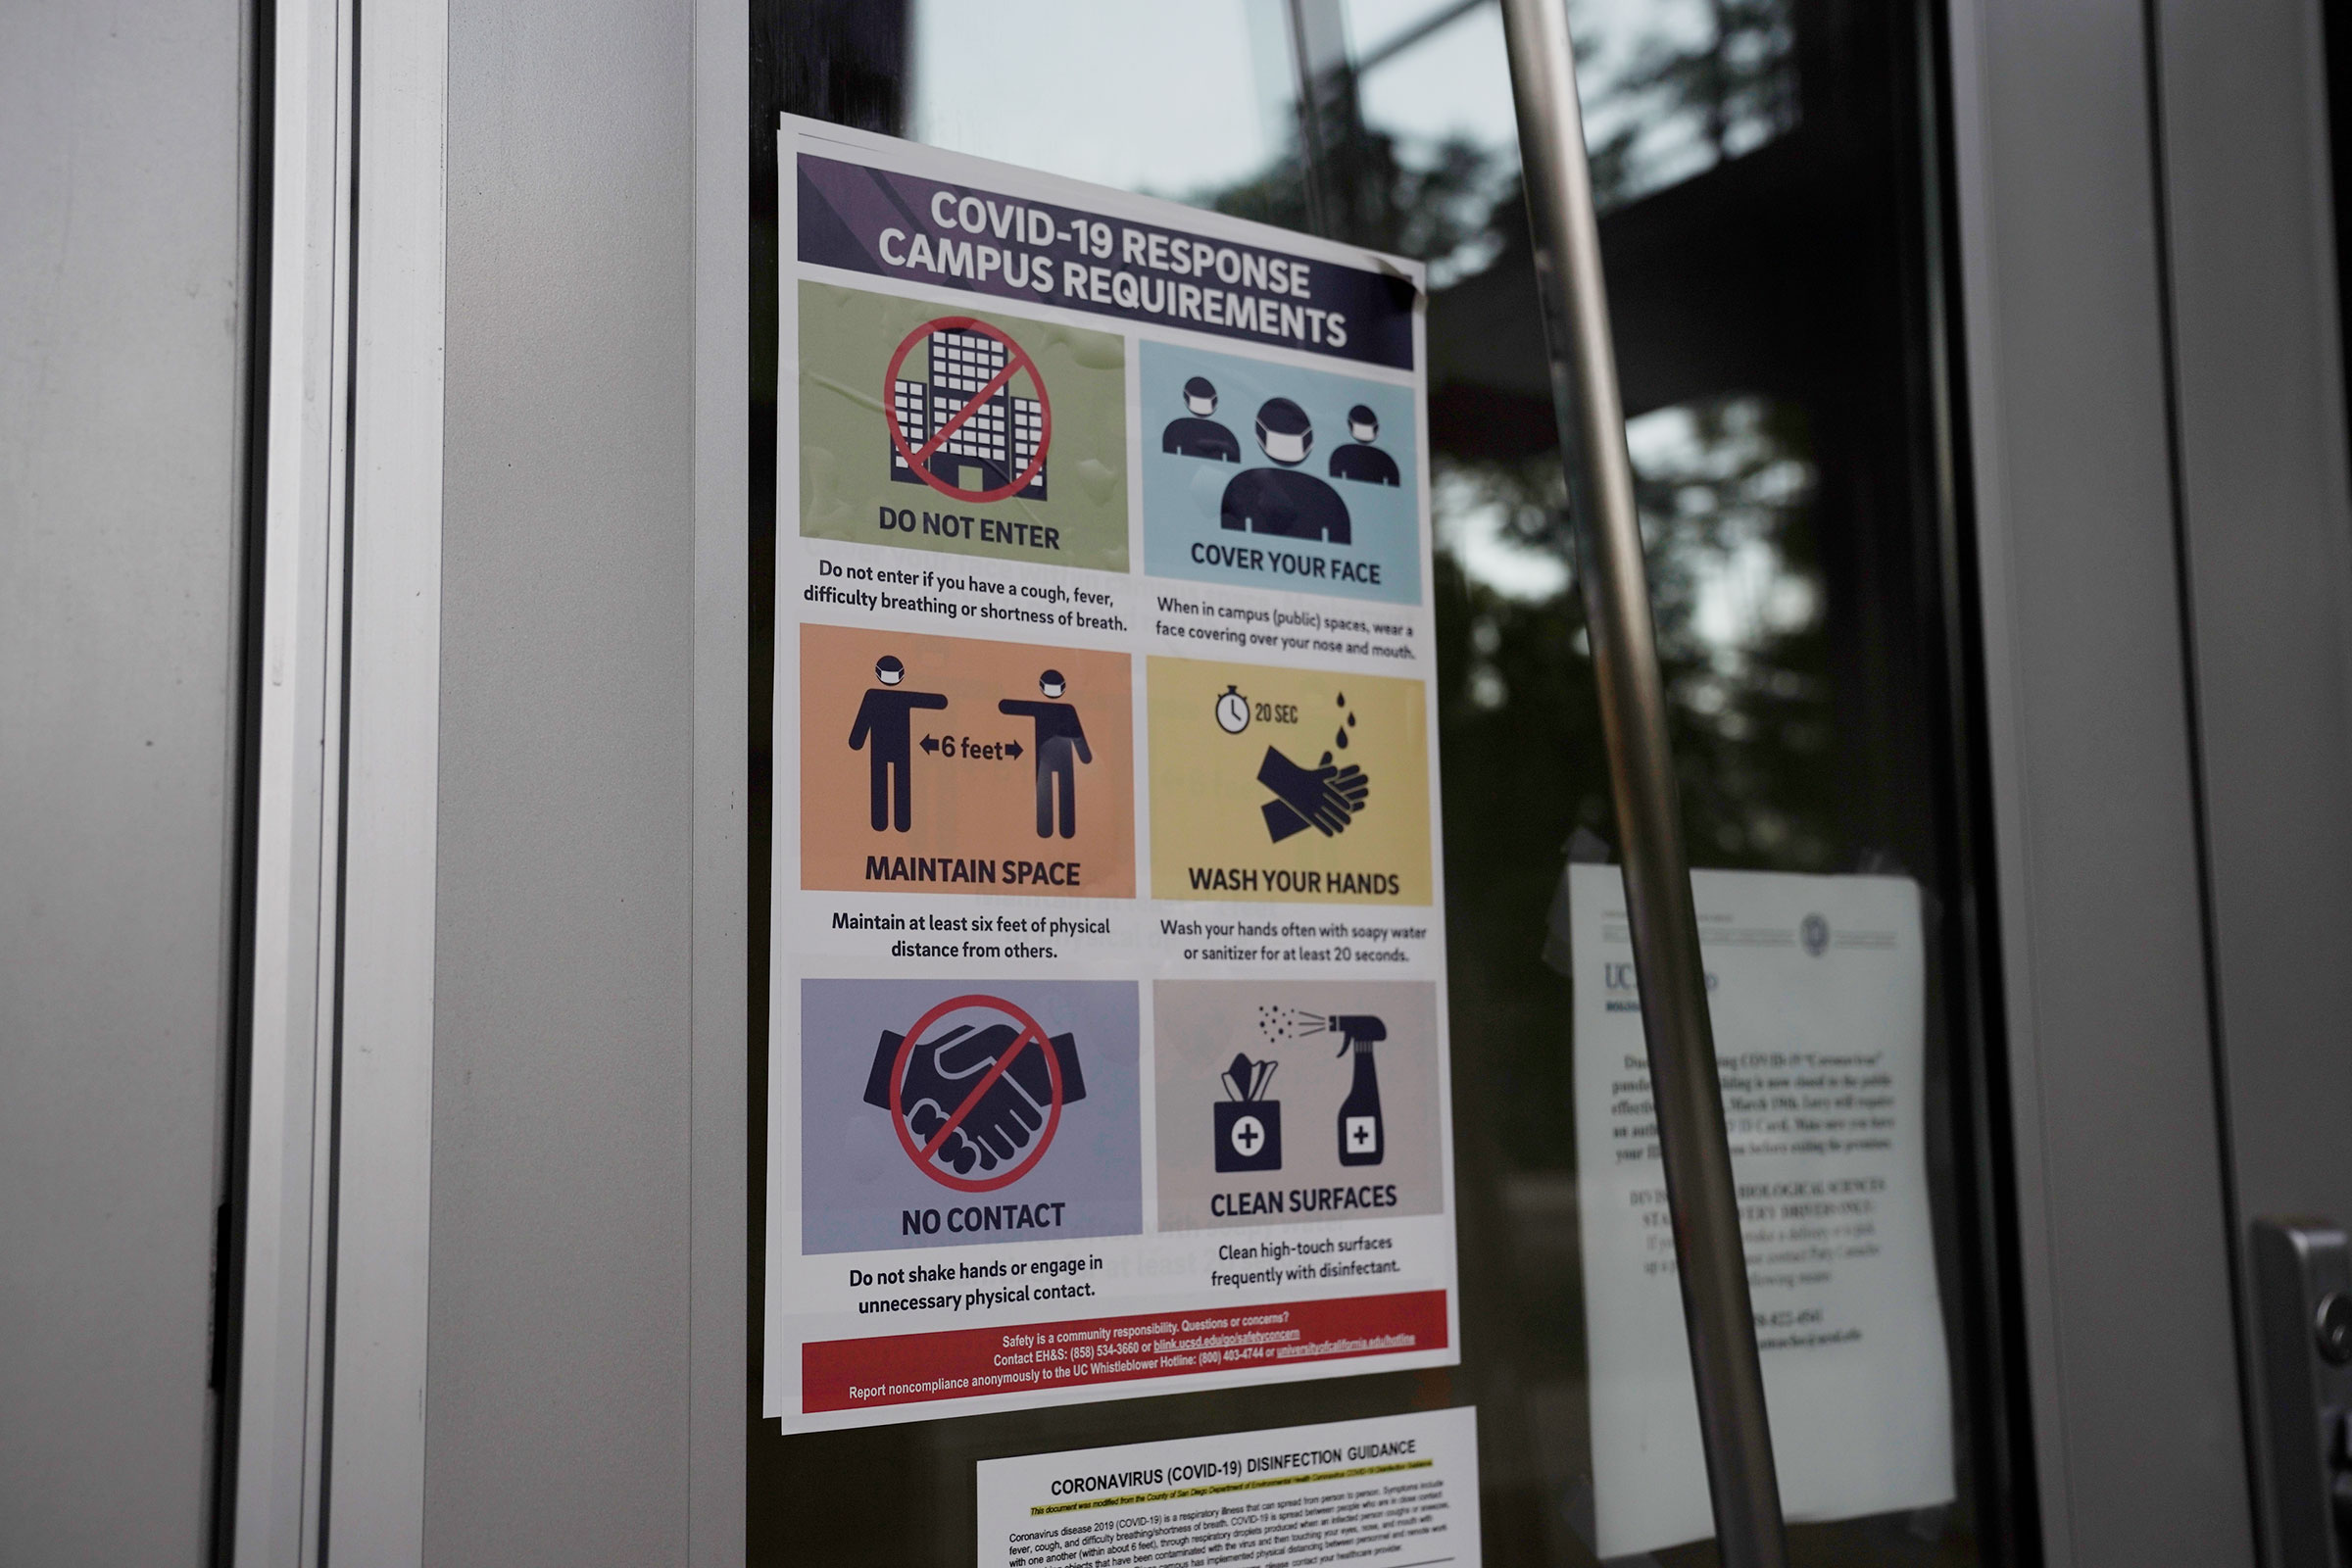 A  Covid-19 Response Campus Requirements  sign is displayed at the University of California San Diego on July 9, 2020.